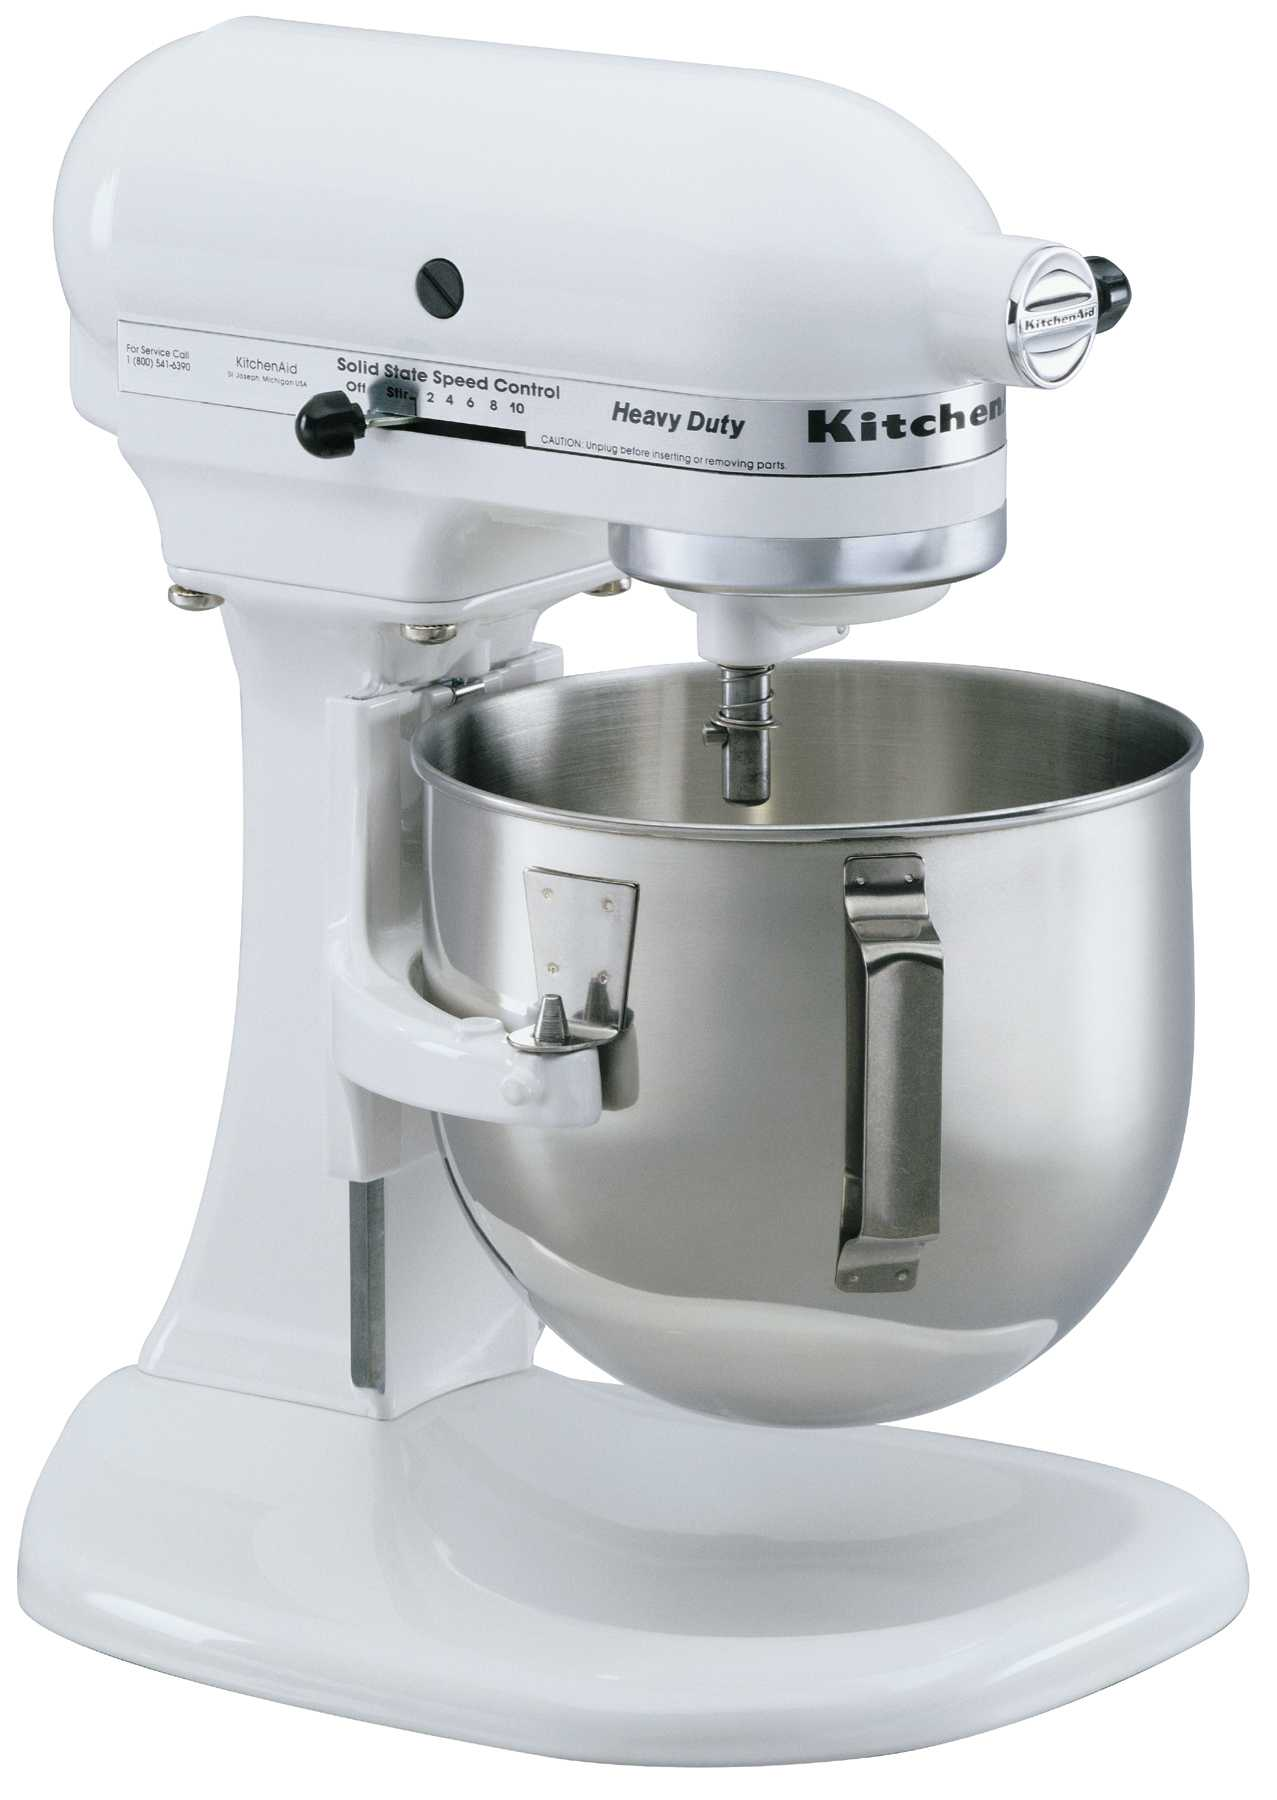 White kitchen aid mixer photo - 1